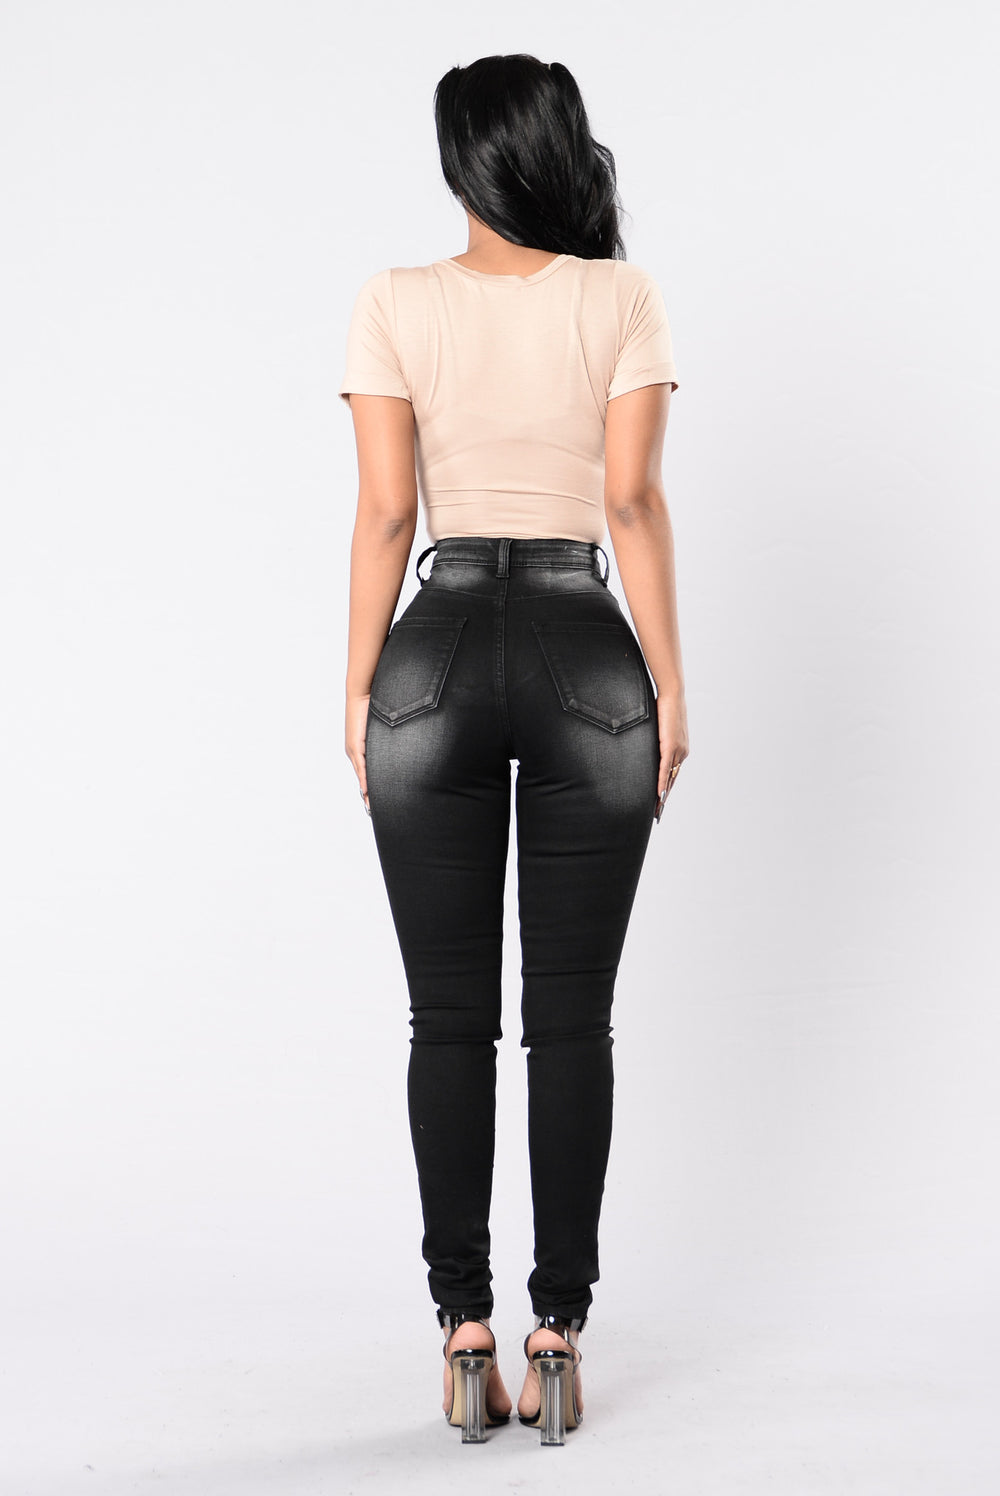 Thigh Pressure Jeans - Black